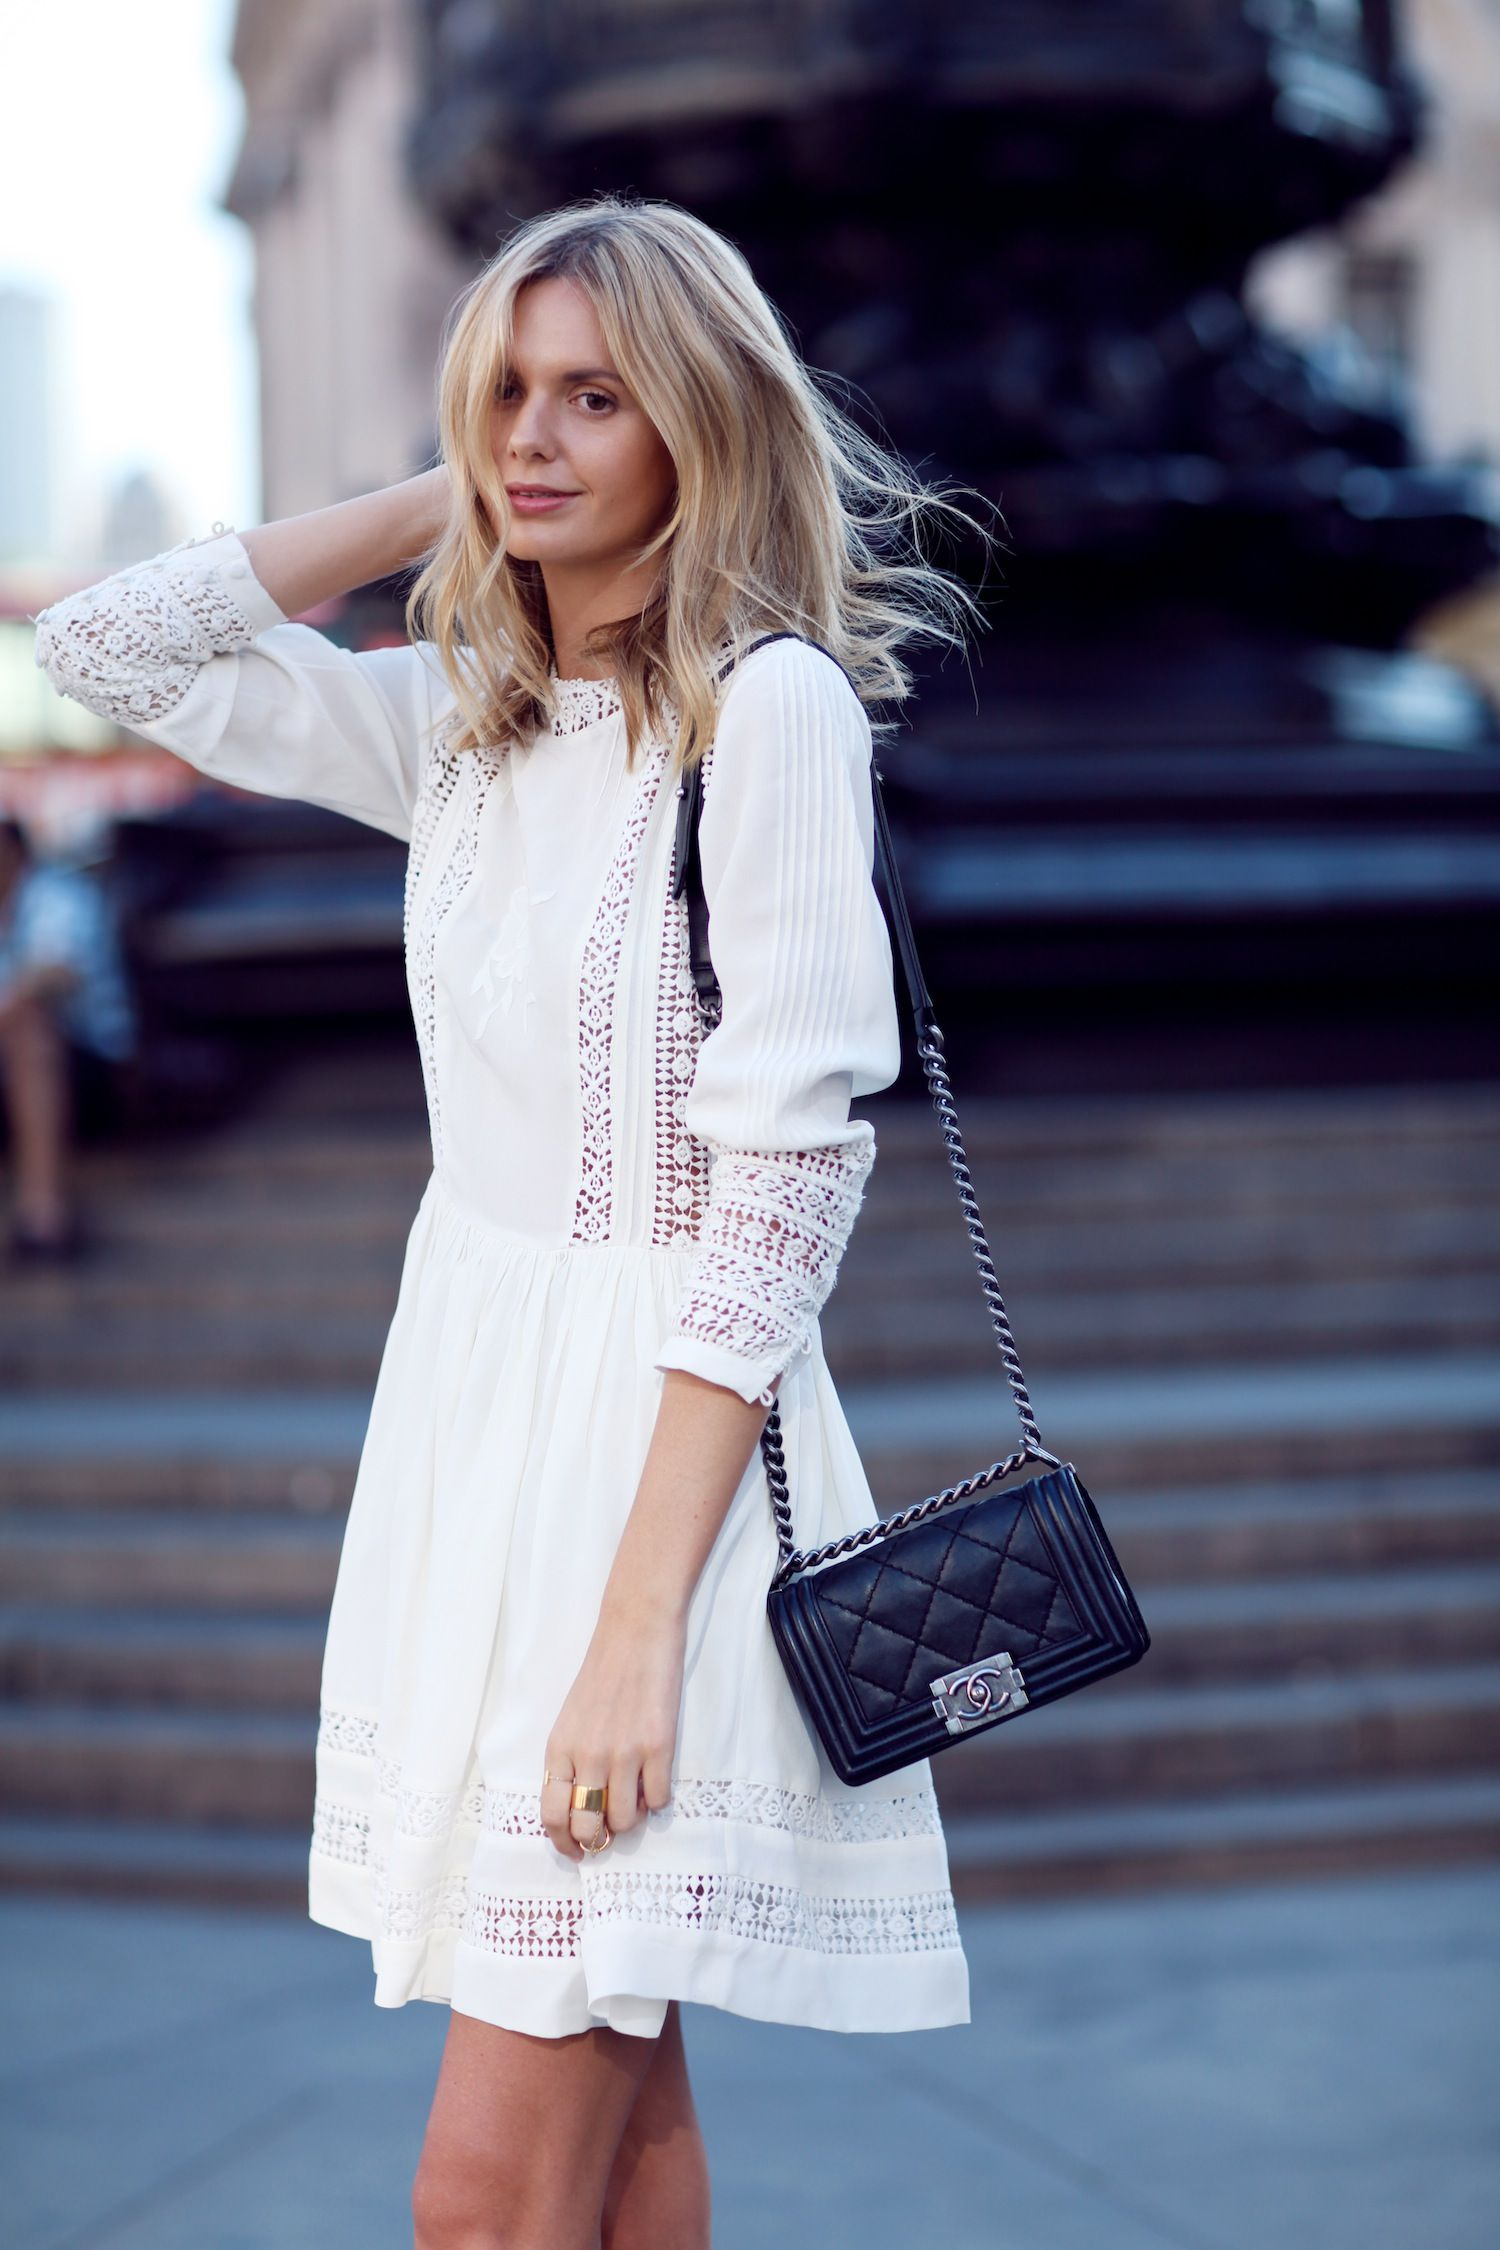 f438a23e8 35 Ways to Wear Lace Like a Street Style Star